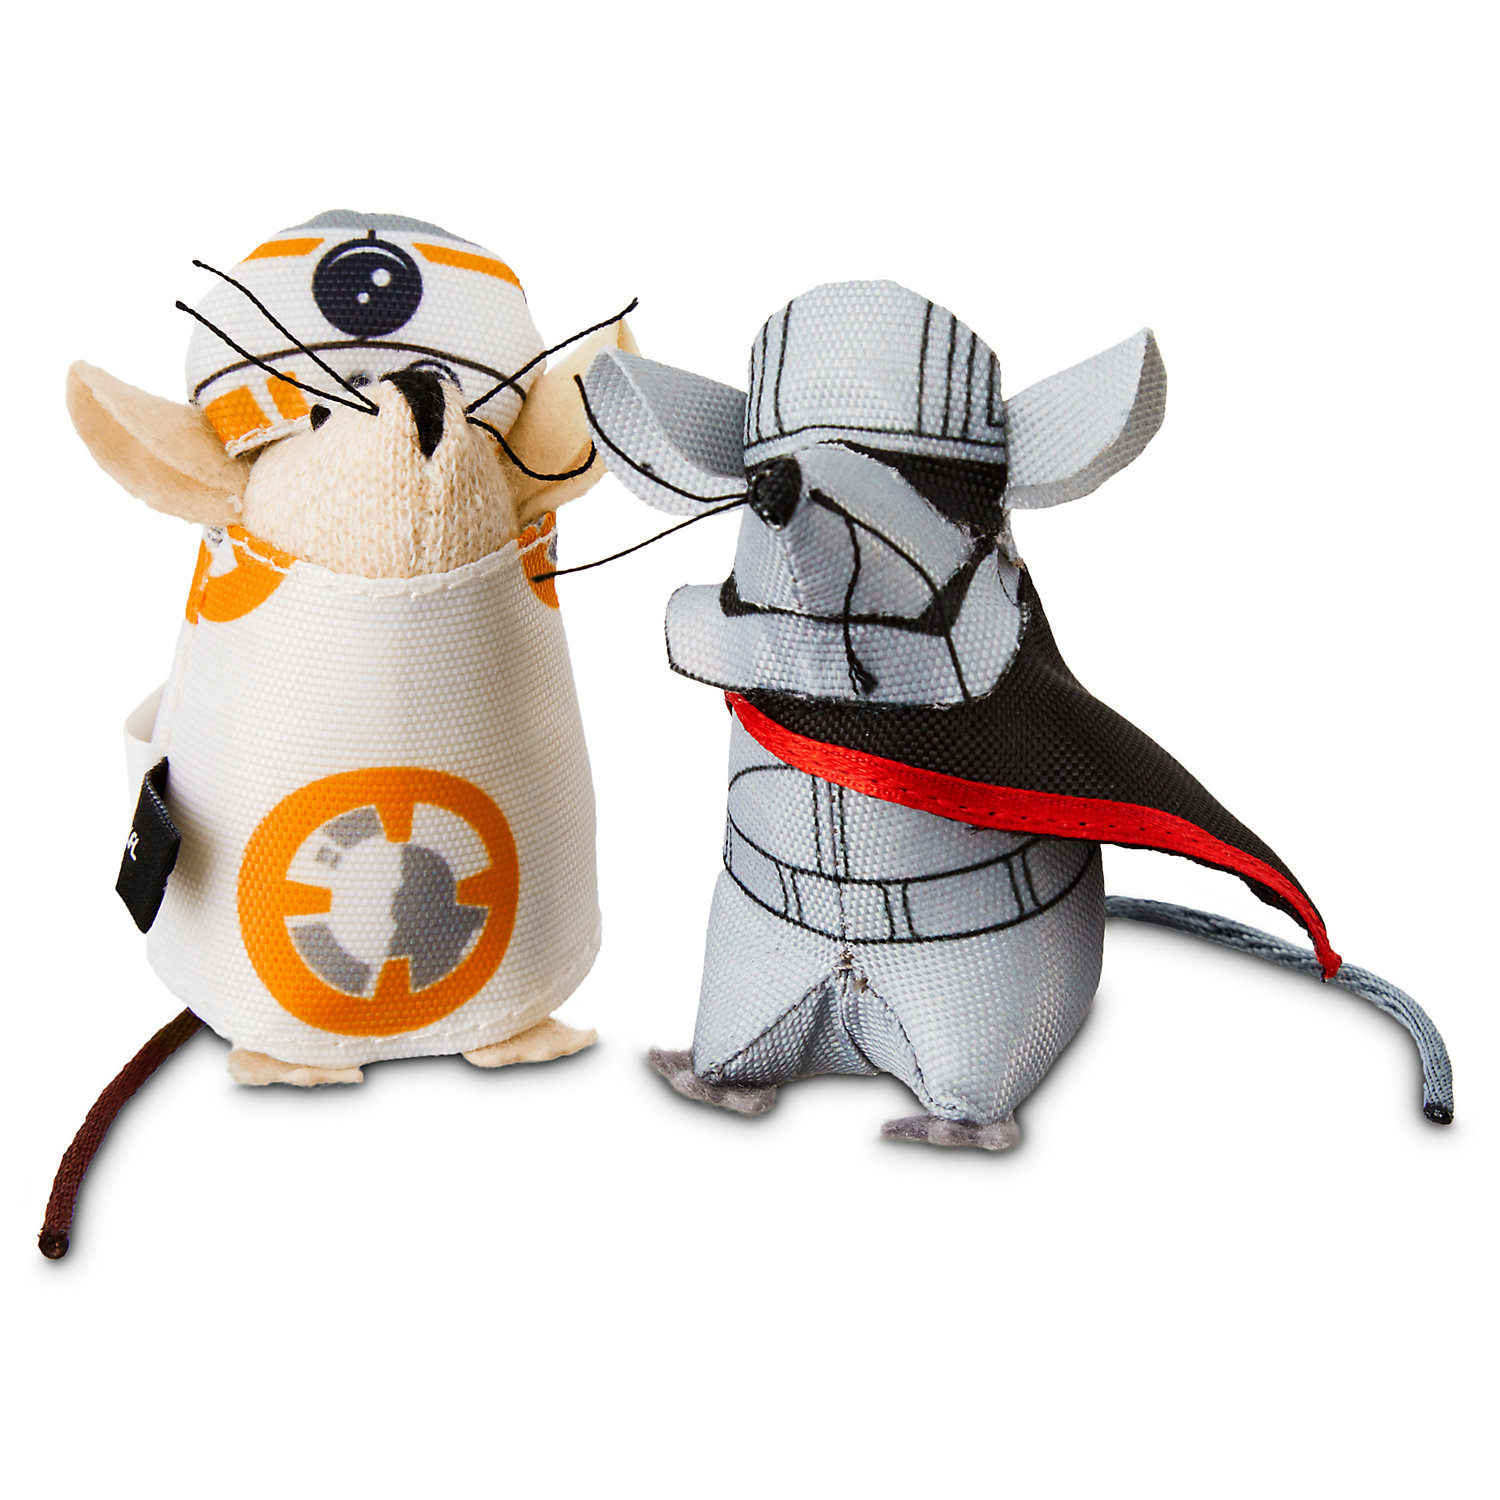 Star Wars BB-8 & Captain Phasma Mice 2-Pack, Kitty Kat, Multi-Color